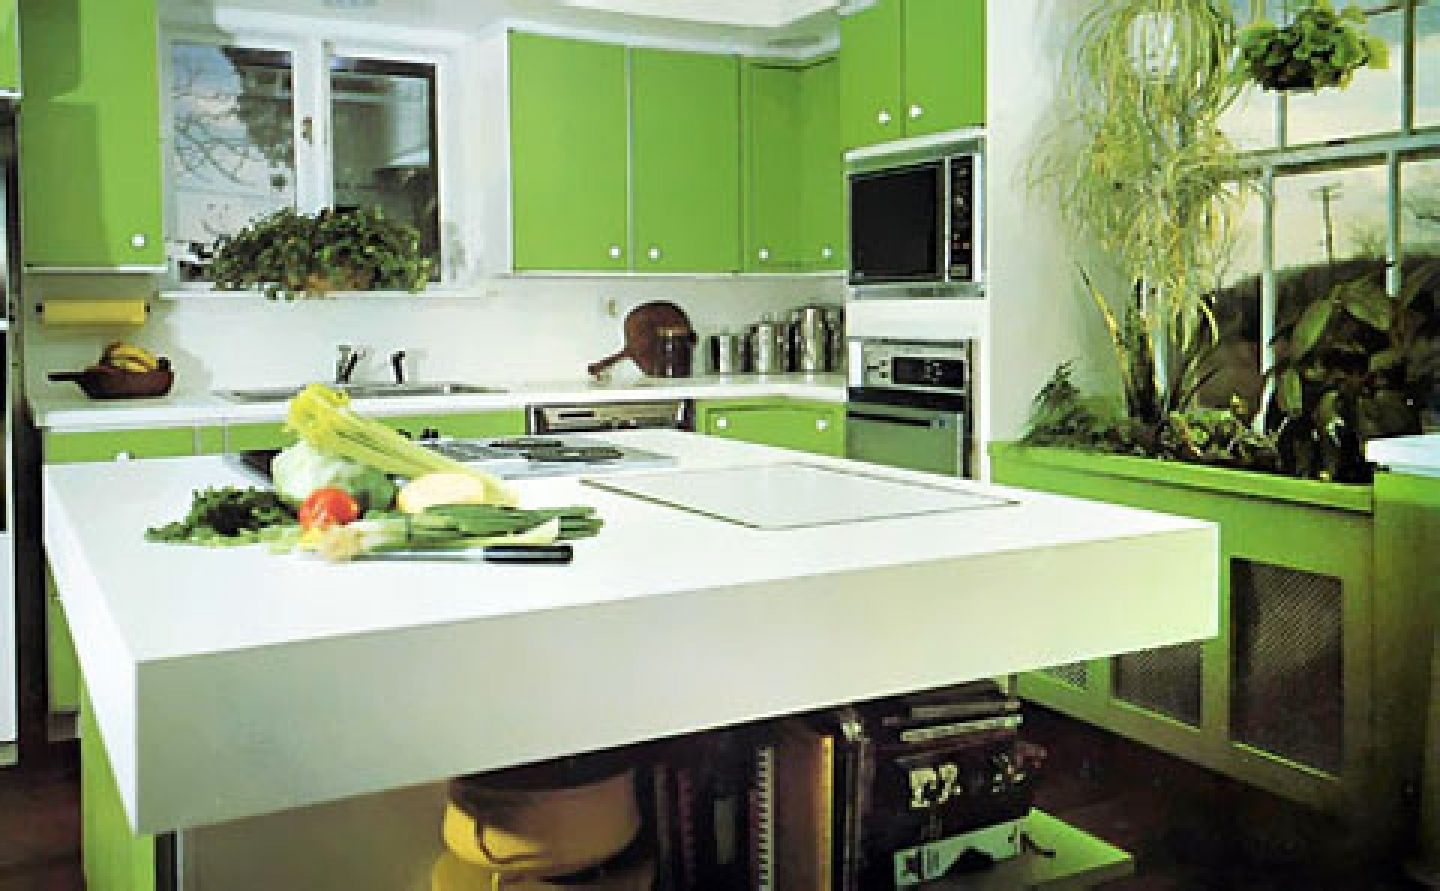 Kitchen 101 creating healthier and greener kitchen for Kitchen decoration